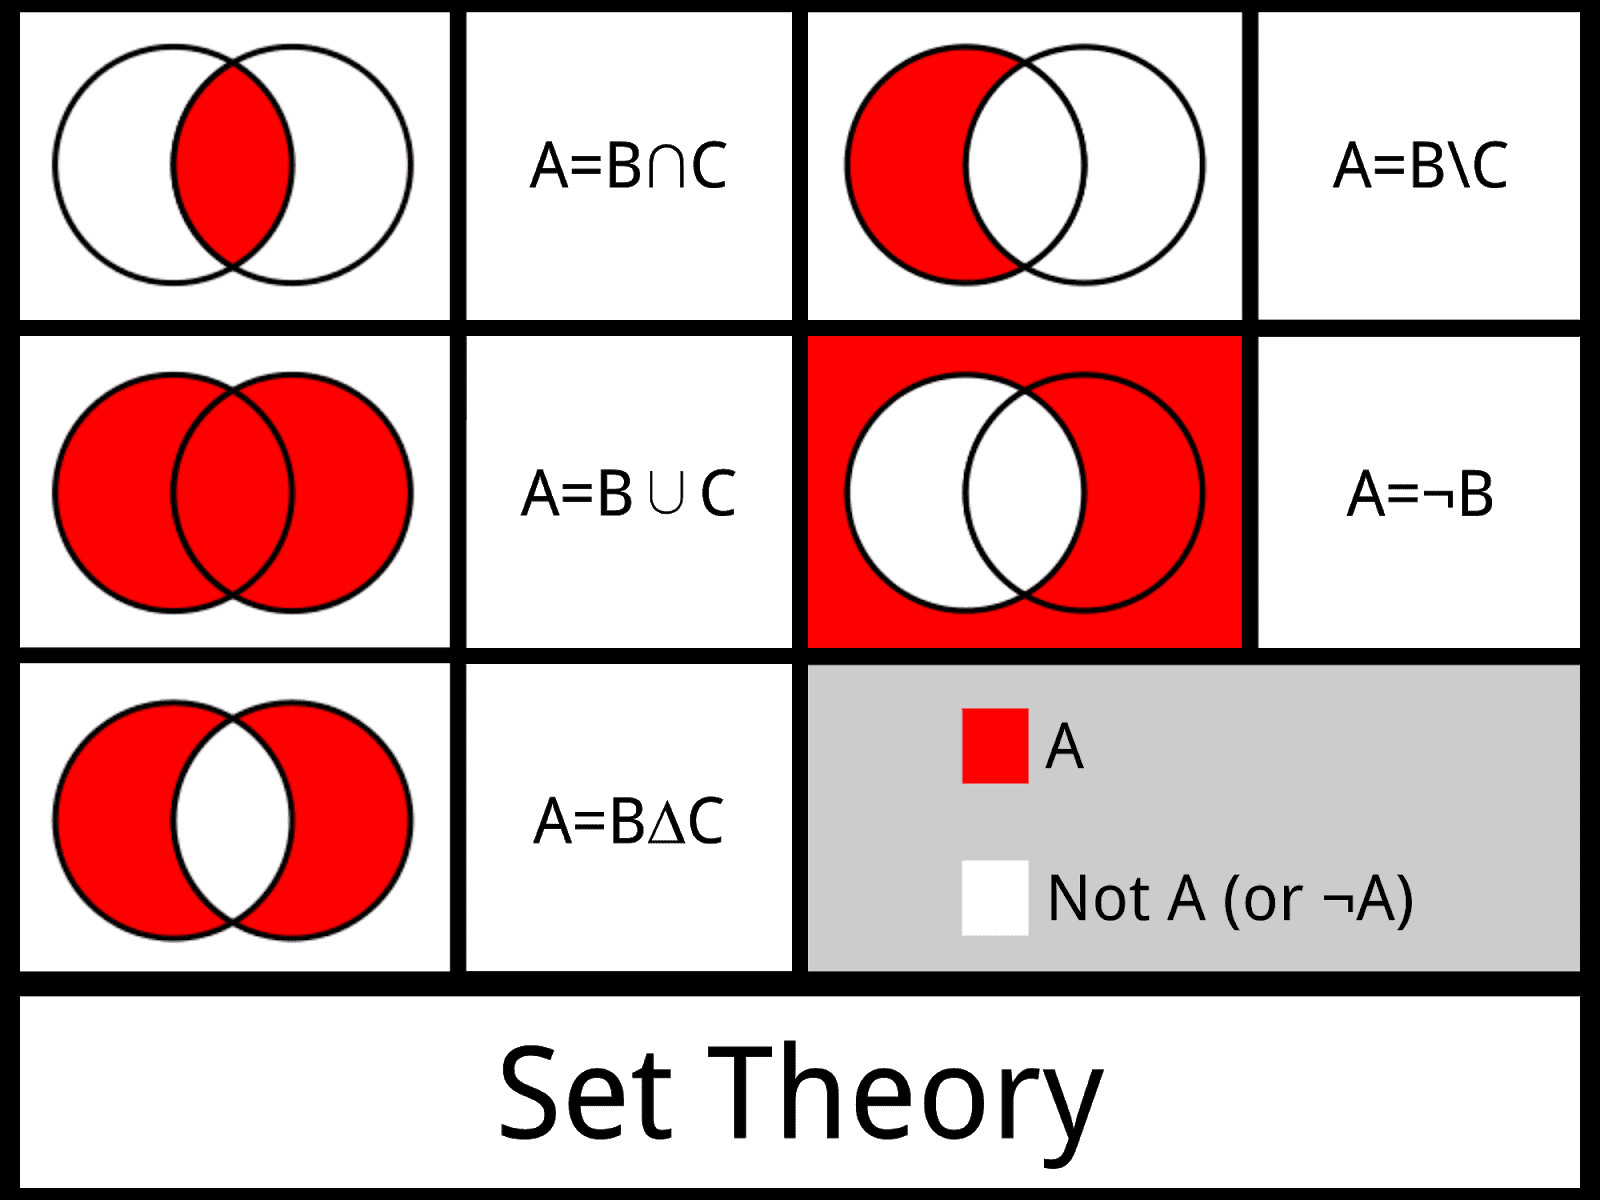 set theory venn diagram problems single pole electric elevator e100 and relations physics chemistry biology